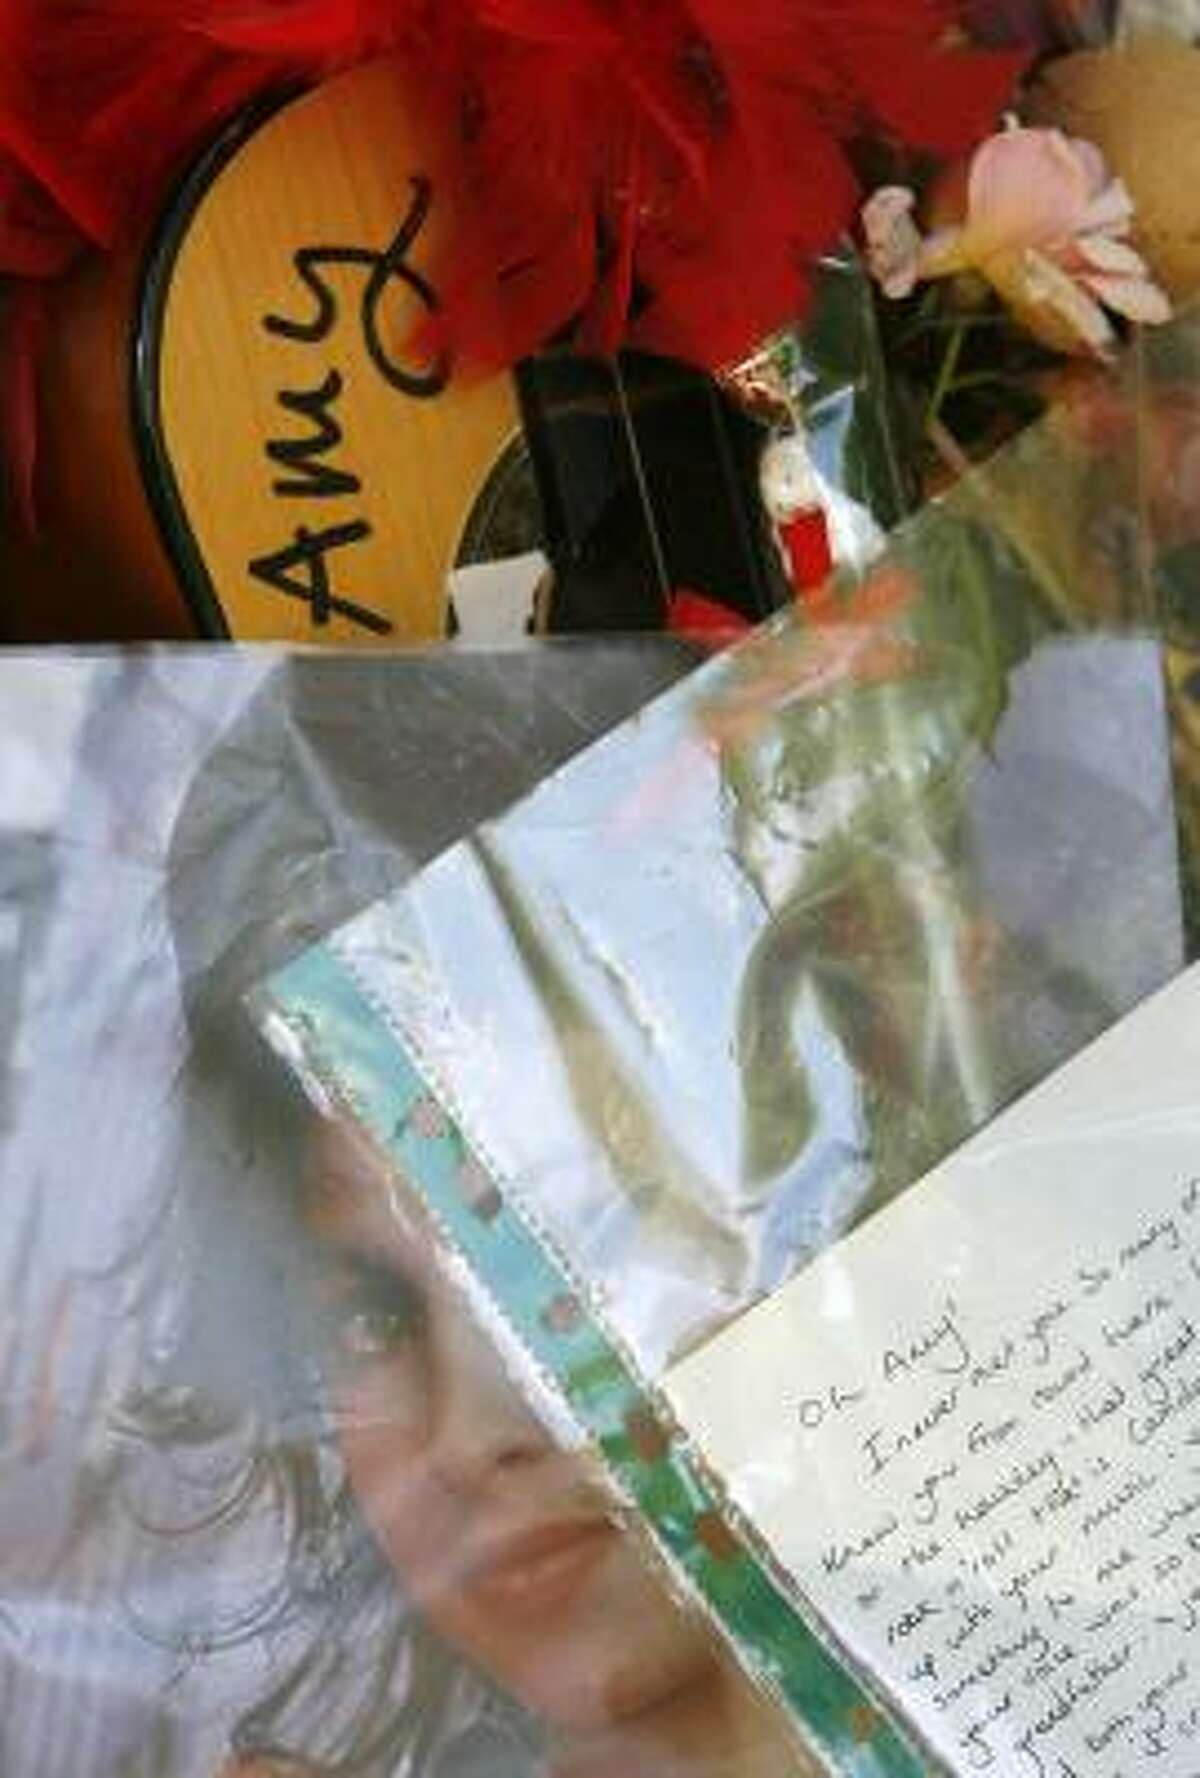 Tributes are seen Sunday outside Amy Winehouse's north London home, where she was found dead the day before.